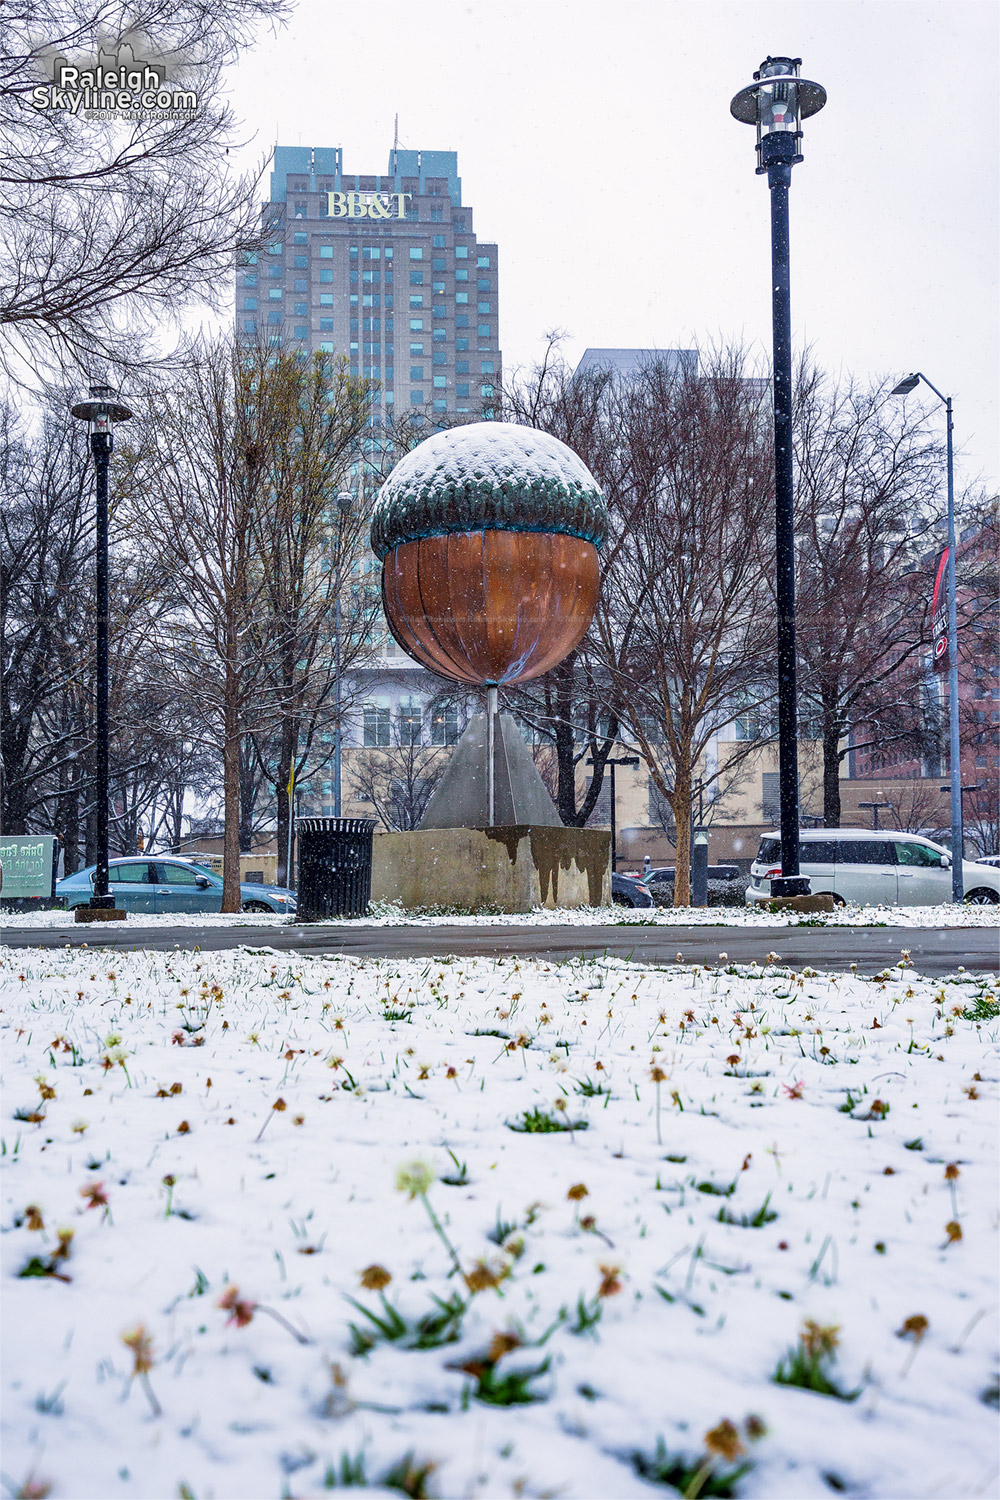 Giant acorn in the snow